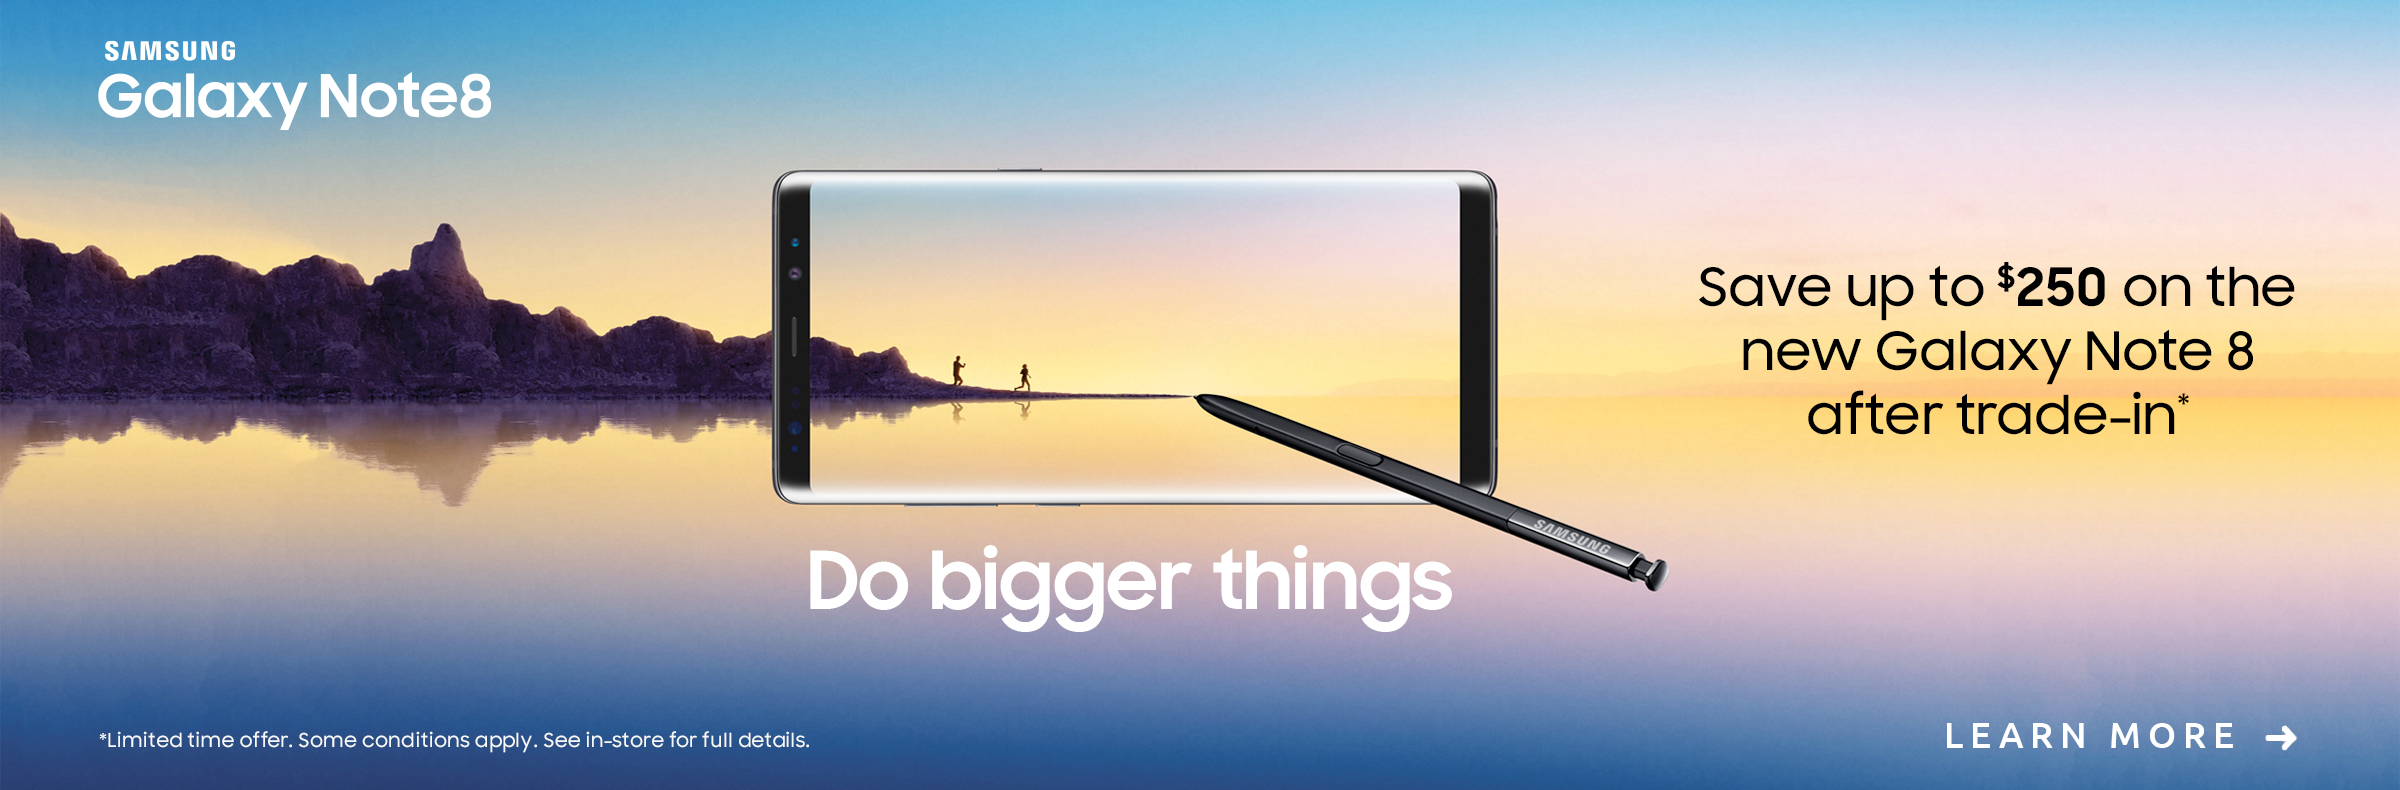 Samsung Galaxy Note8 Trade-in Offer